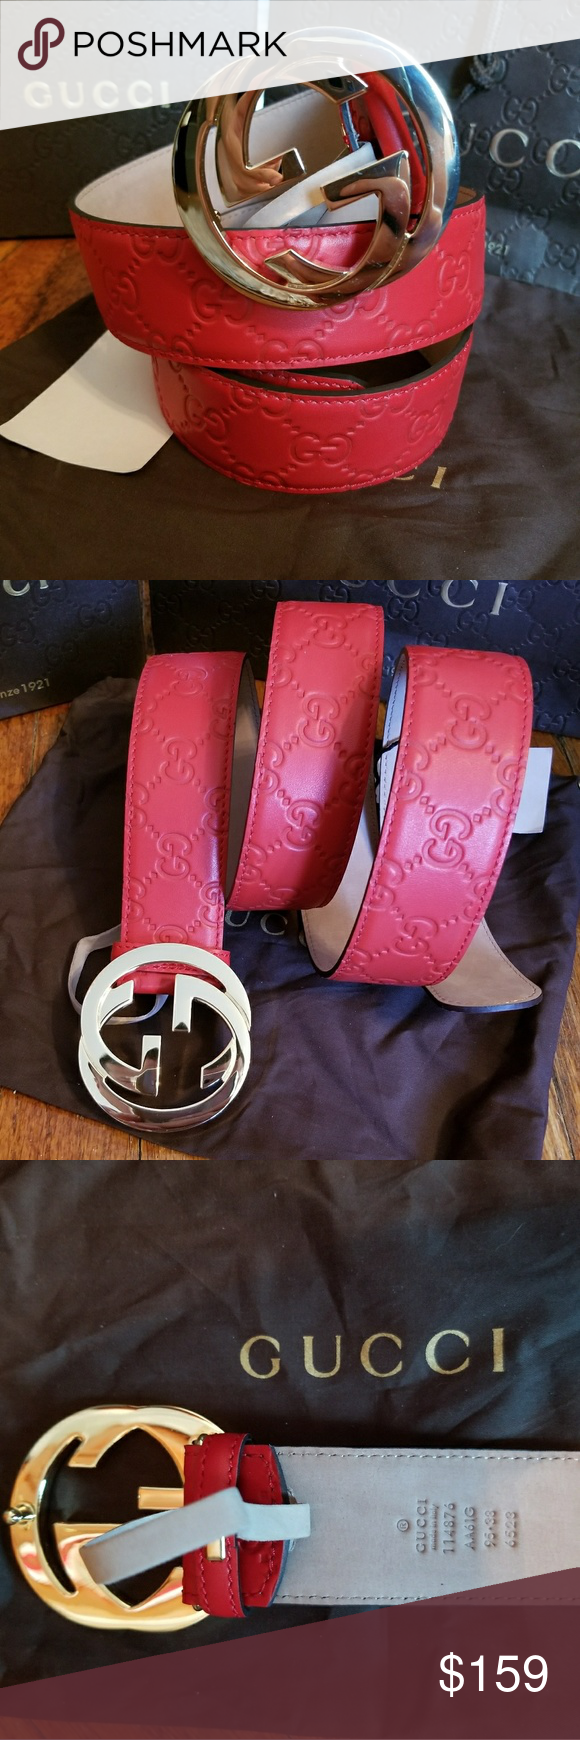 71401ed5bf5 😘Authentic Gucci Belt Red Guccissima Print 😘Authentic Gucci Belt Red  Guccissima Print with Gold GG Buckle. Hot! Comes with tags